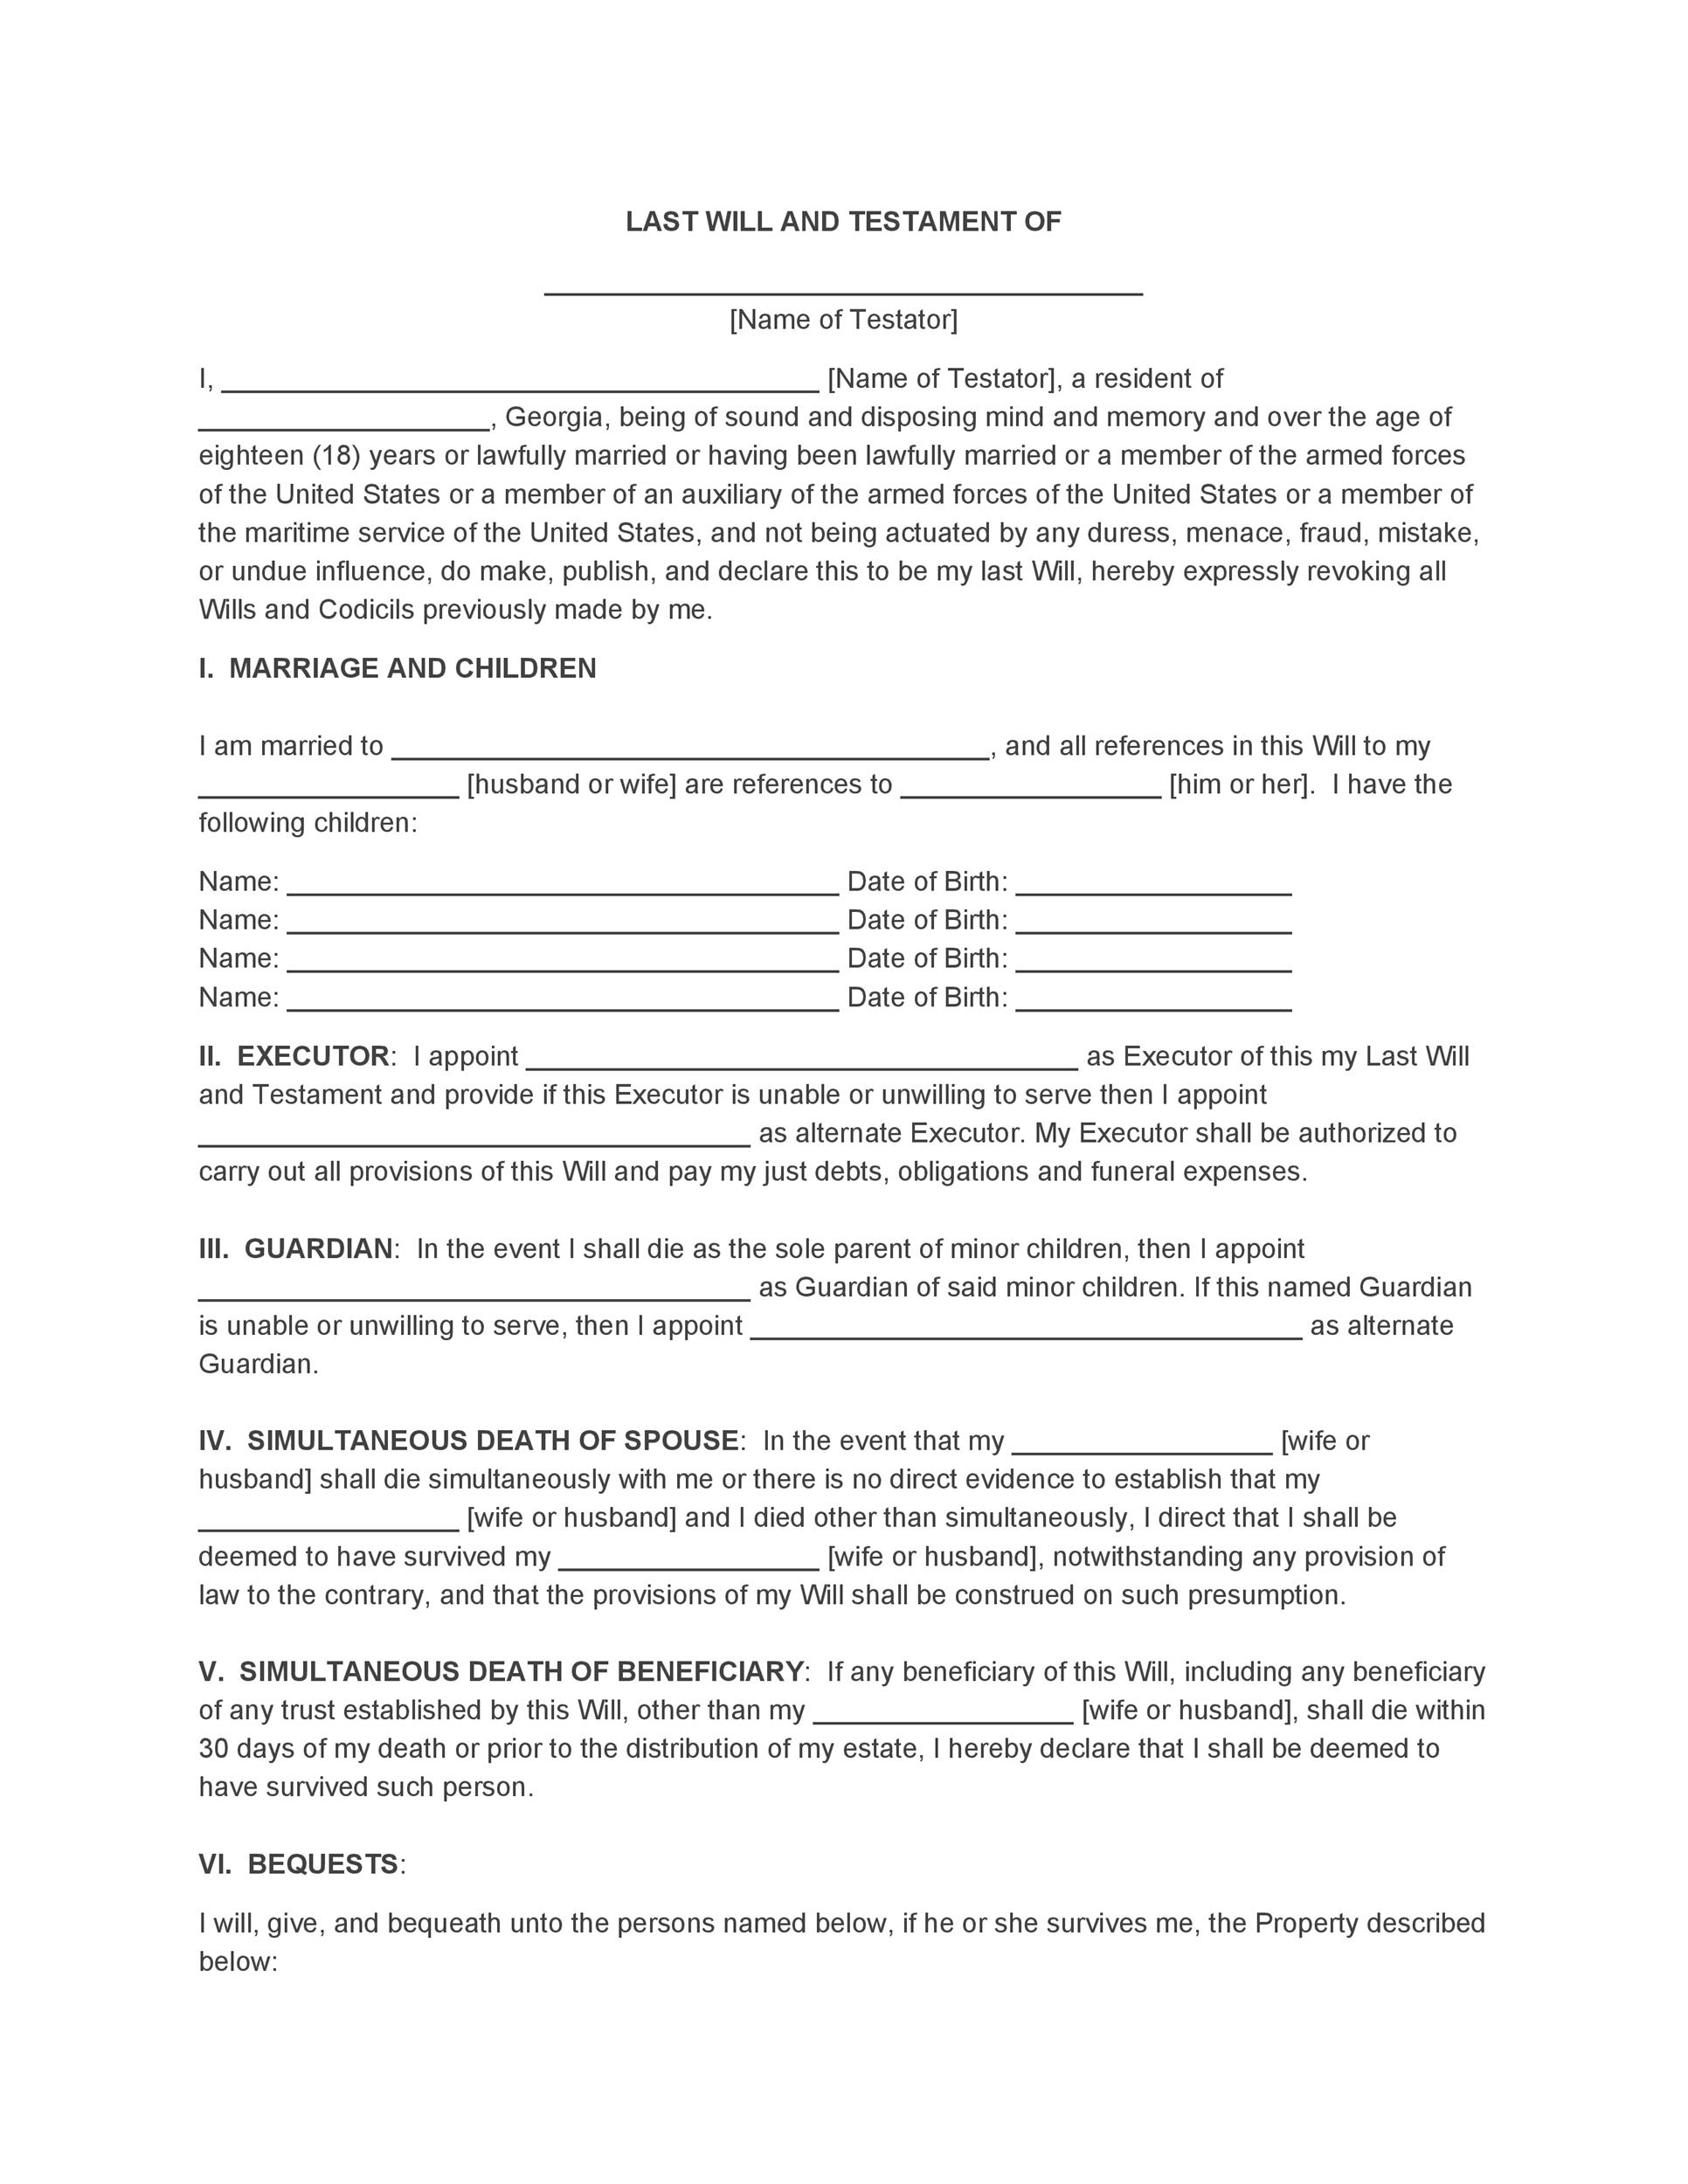 Last Will And Testament Forms Templates Template Lab - Legal last will and testament template